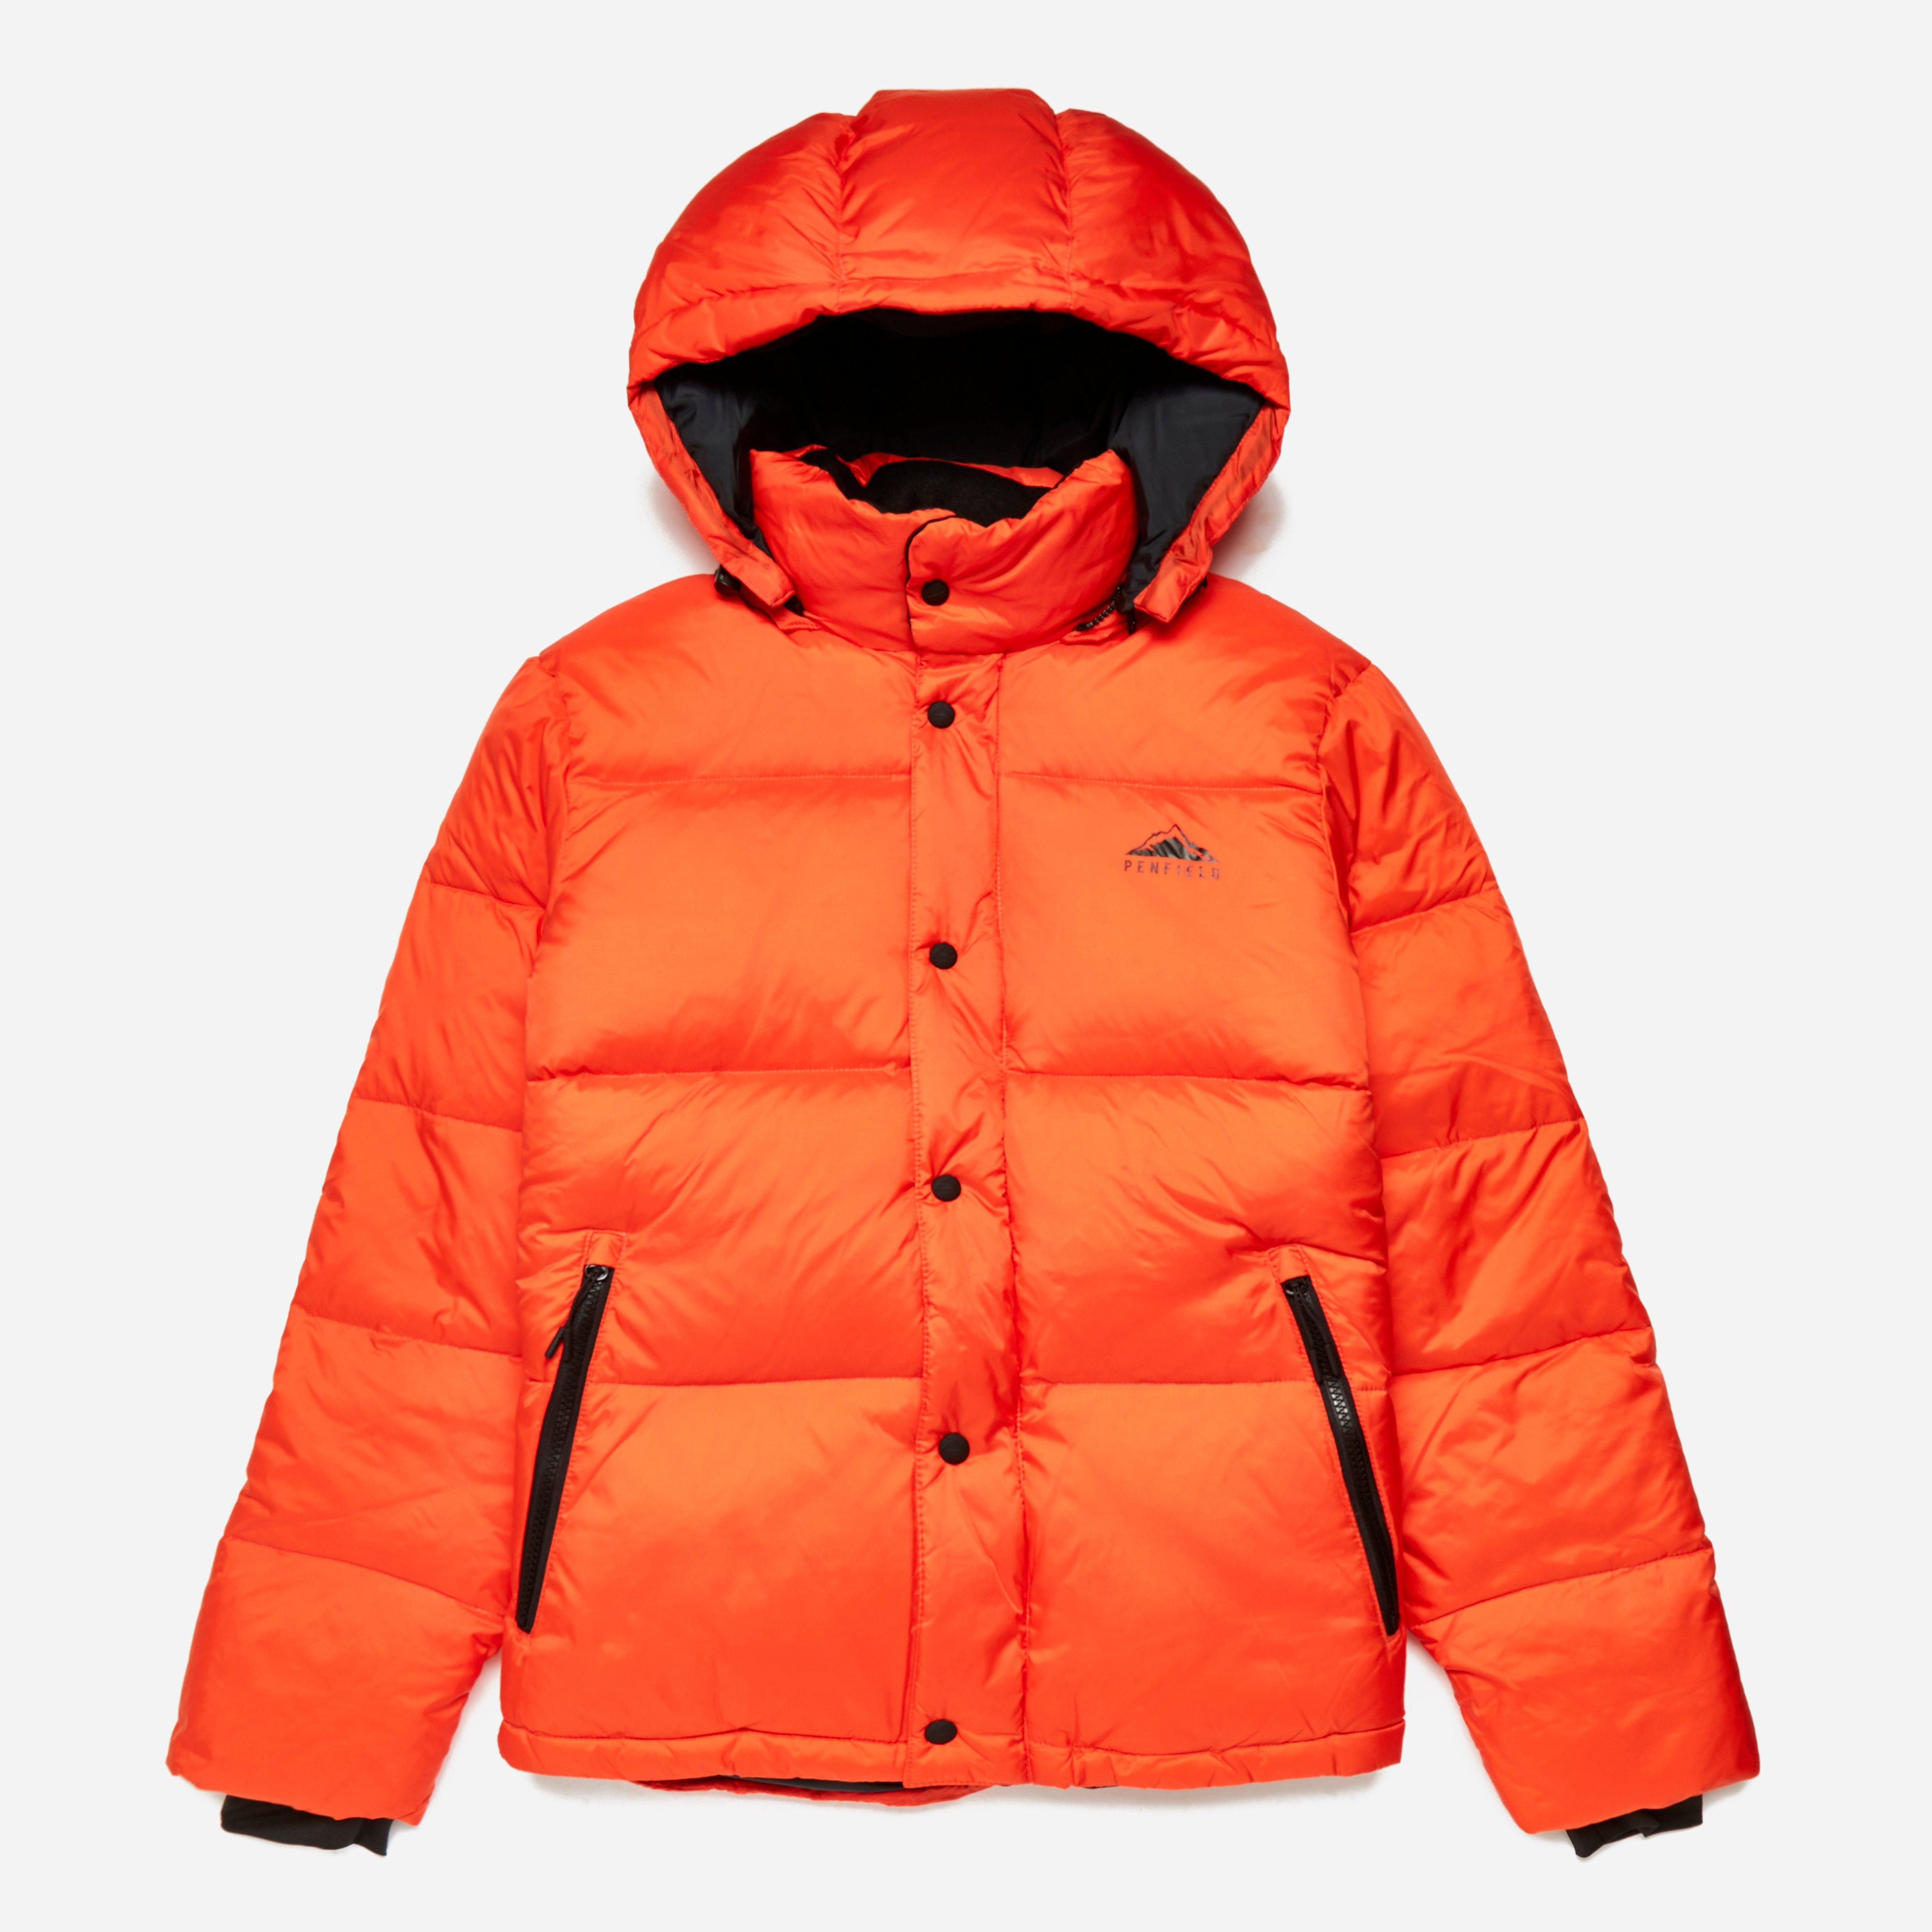 Penfield Equinox Jacket